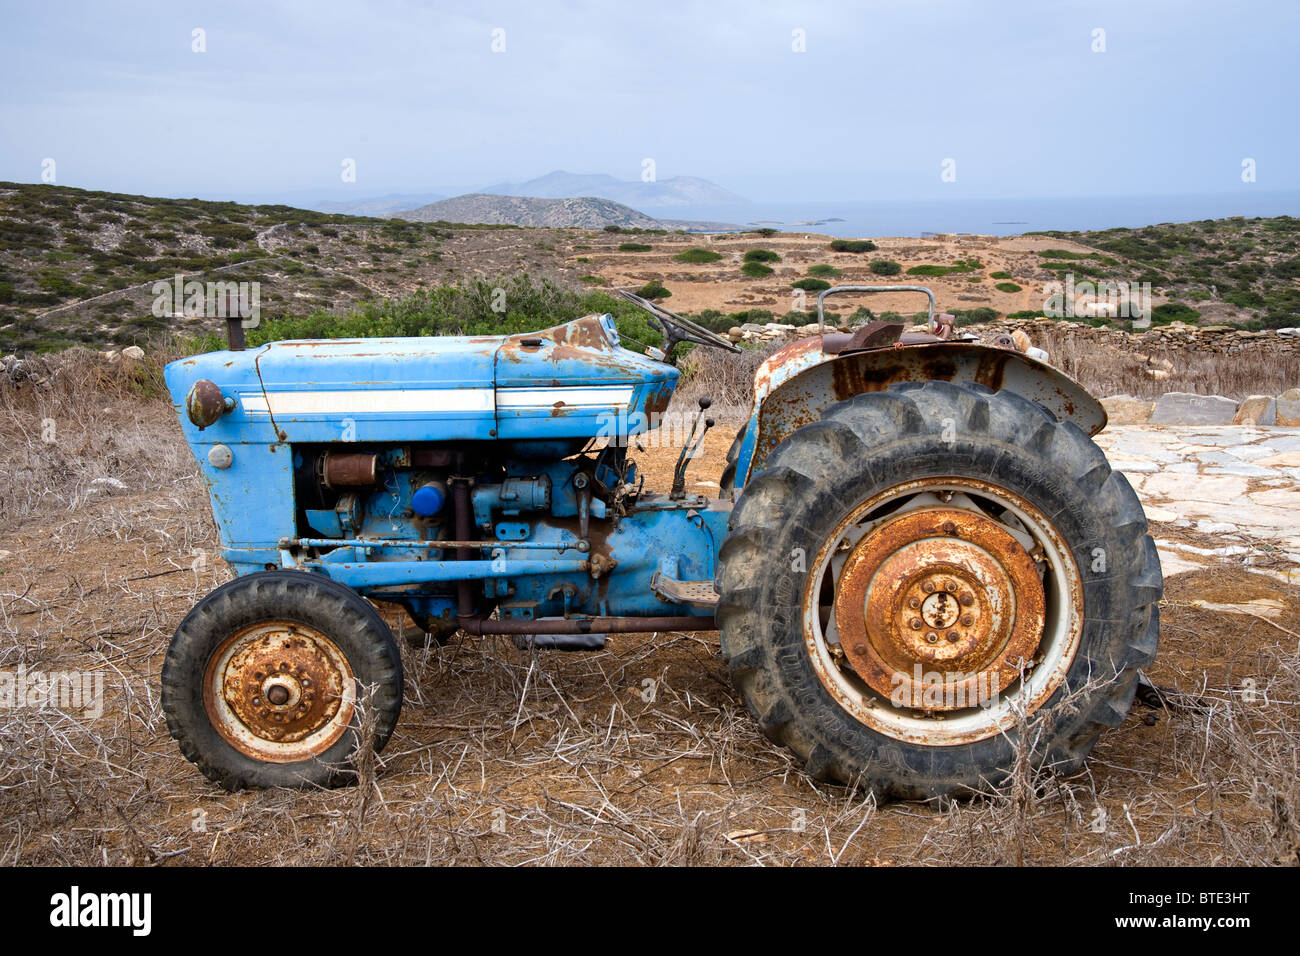 Old Ford Tractors : Old ford farm tractor in a field taken near arkesini